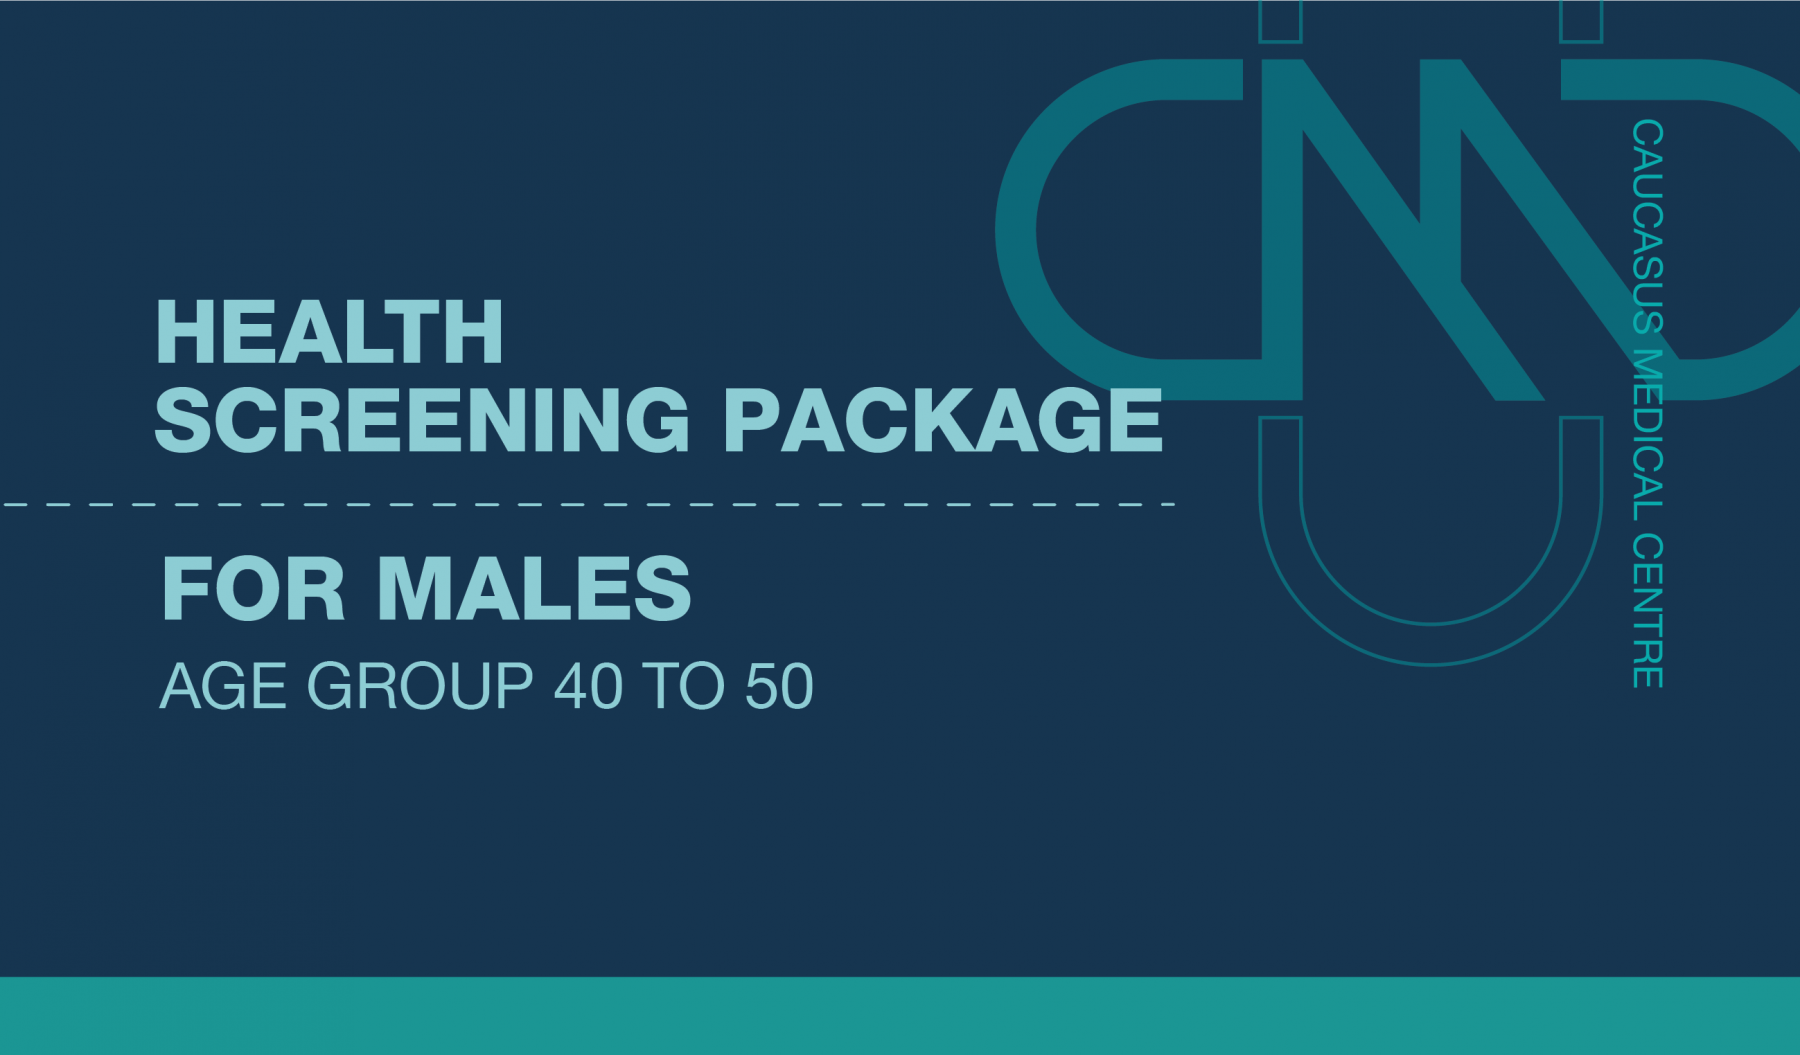 PREMIUM HEALTH SCREENING PACKAGE FOR MALES AGE GROUP 40 TO 50